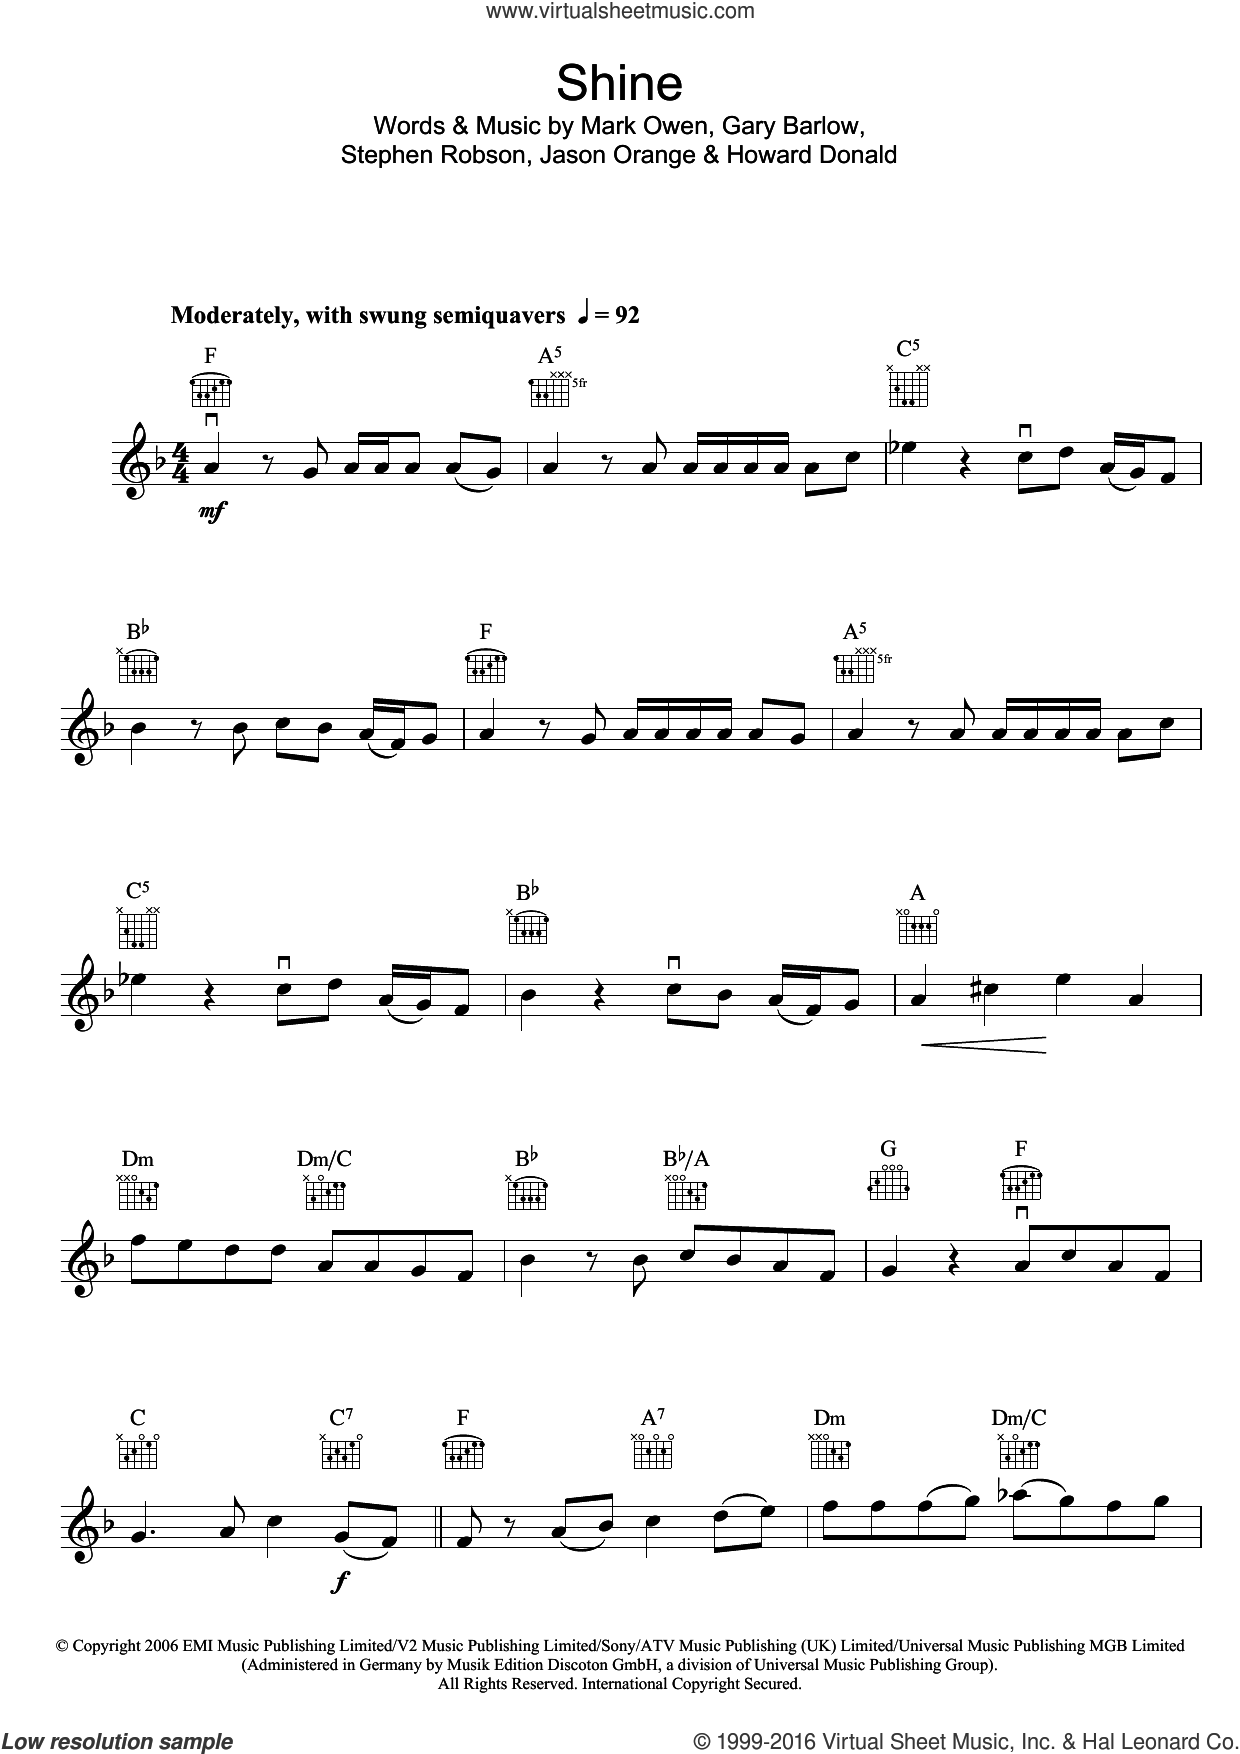 Shine sheet music for violin solo by Take That, Gary Barlow, Howard Donald, Jason Orange, Mark Owen and Steve Robson, intermediate